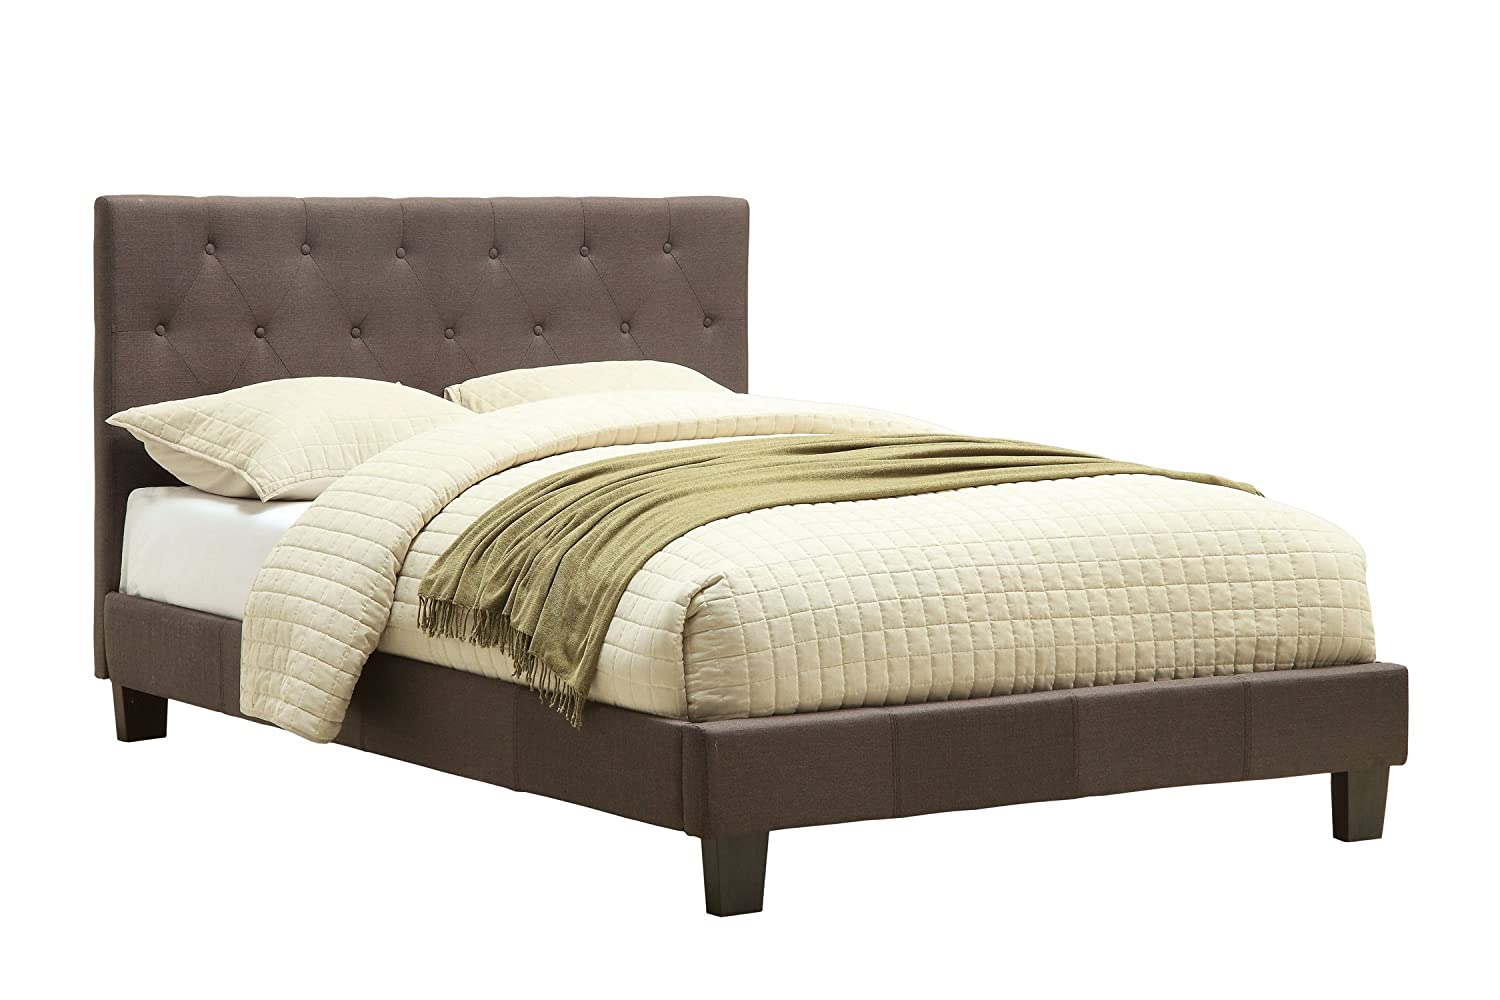 Furniture of America Roy Fabric Platform Bed with Button Tufted Headboard Design, California King, Gray